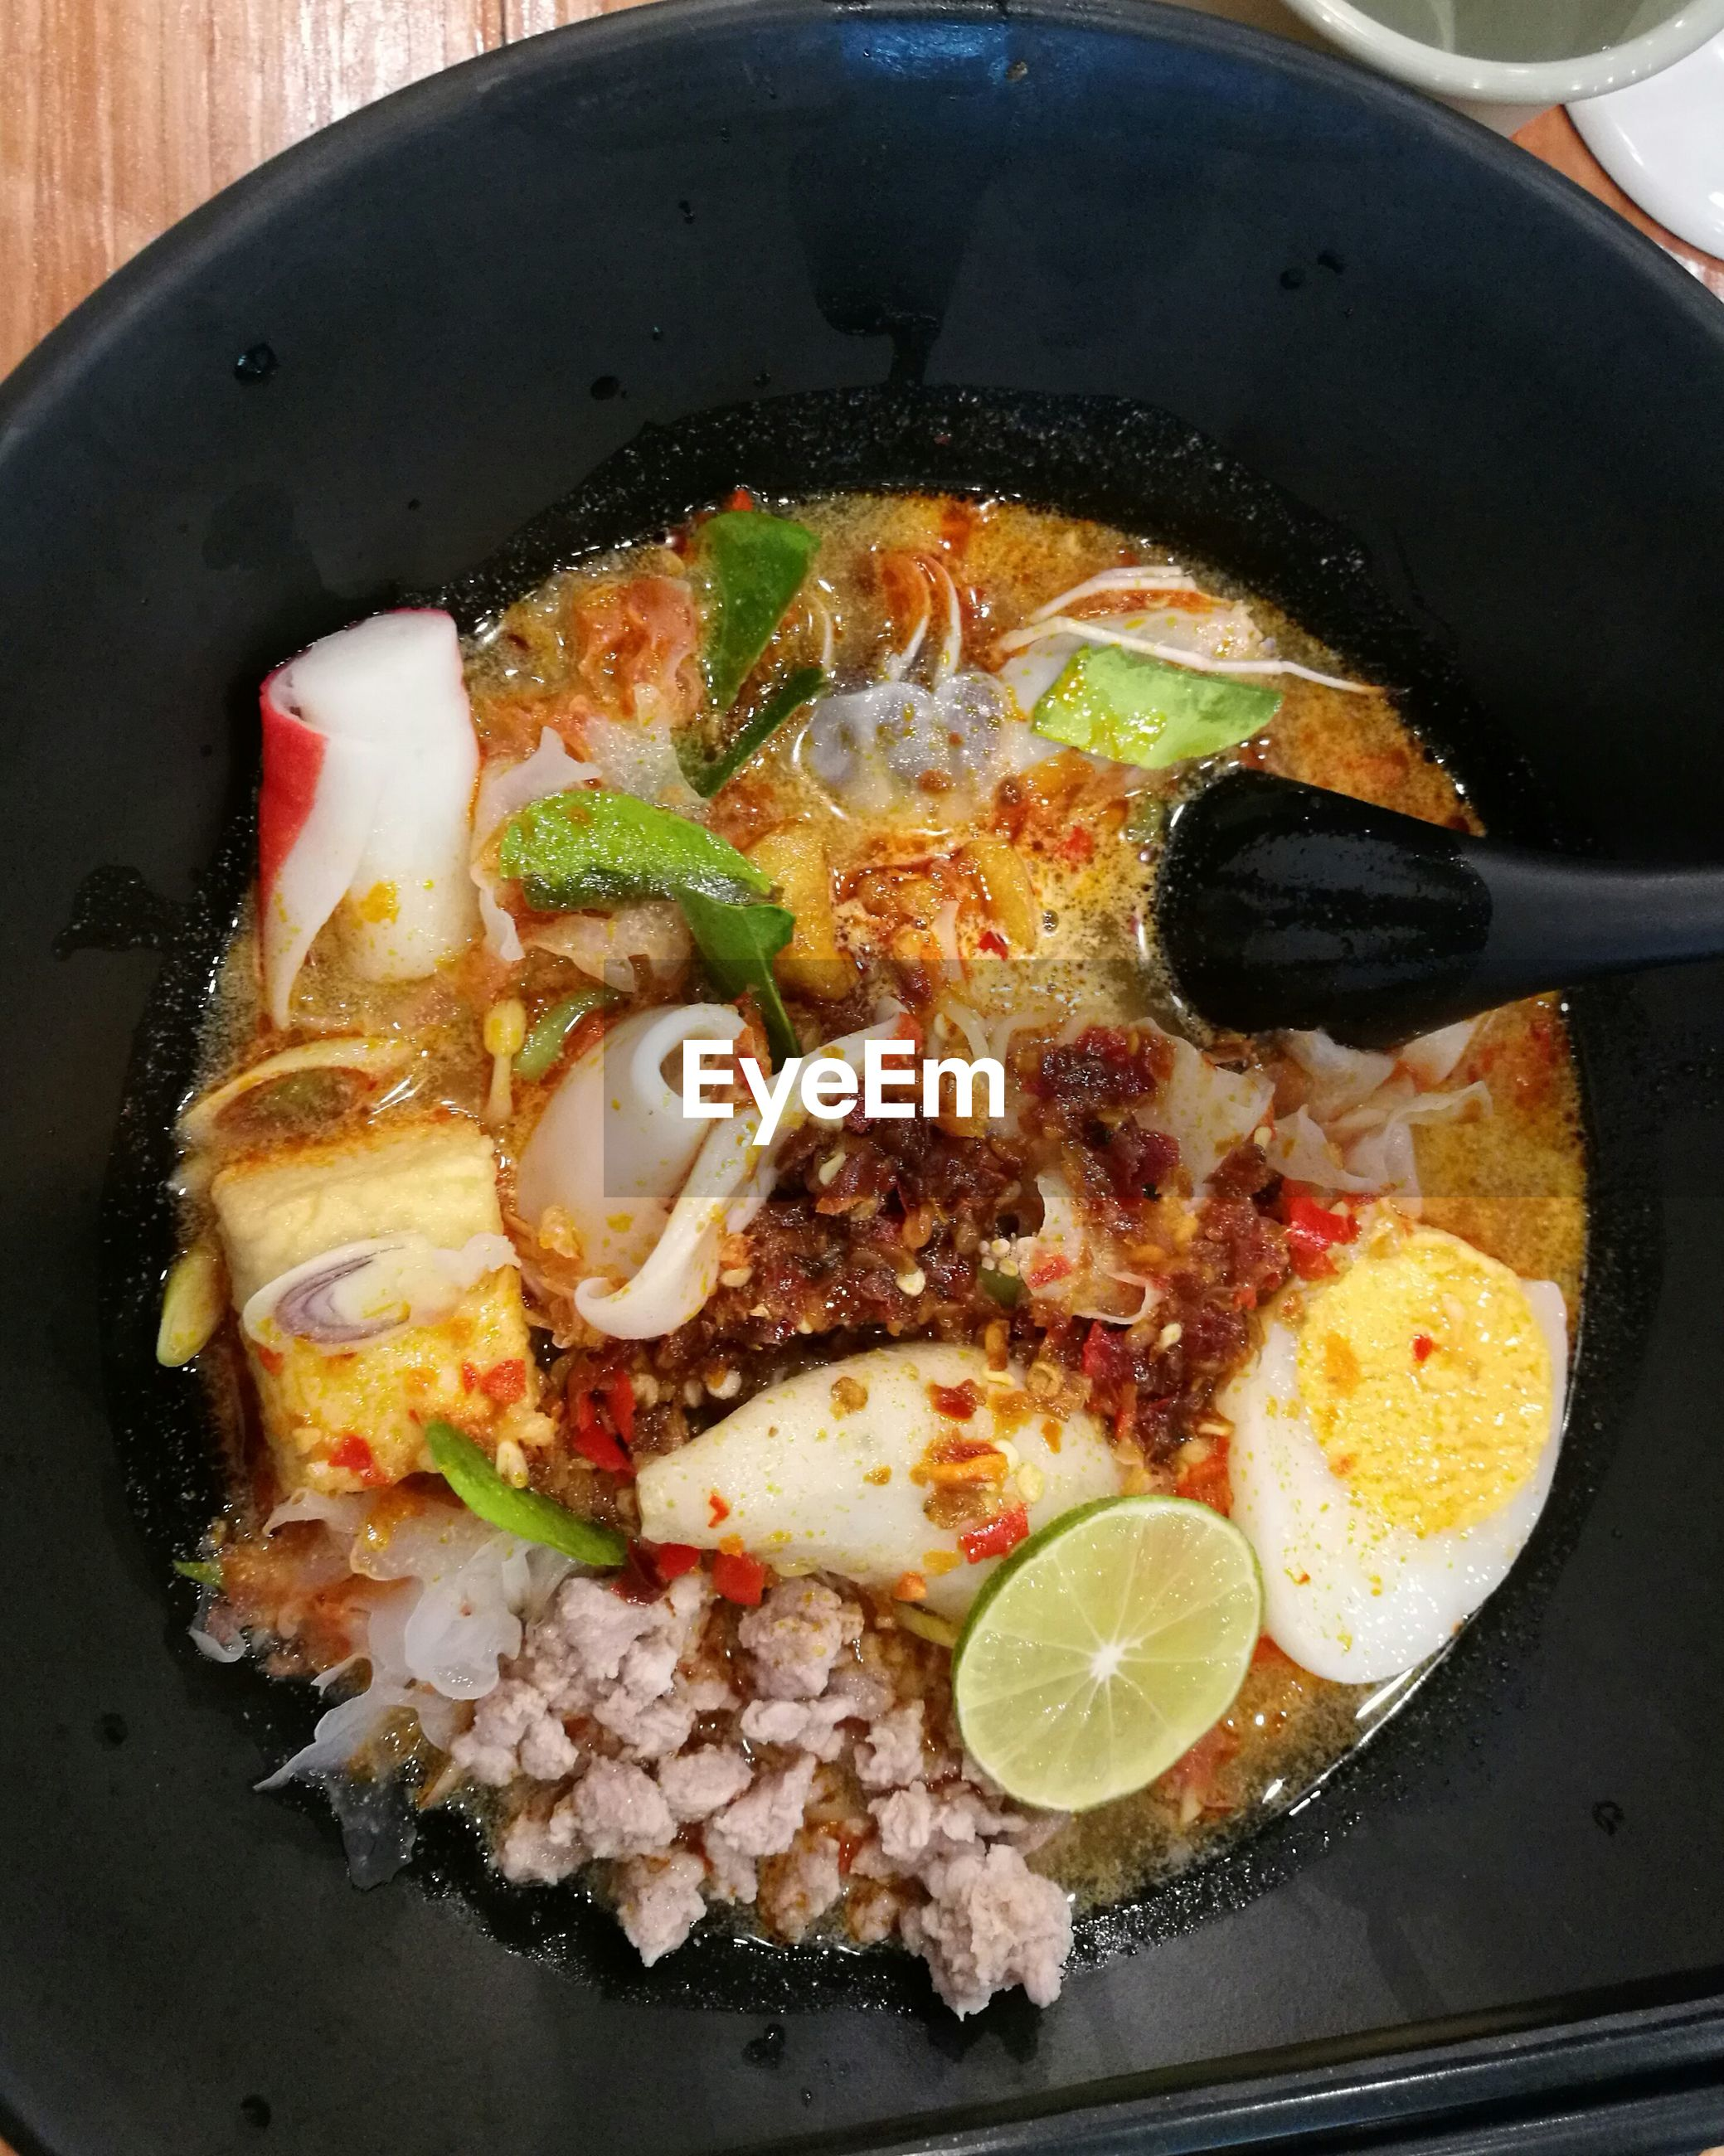 Directly above shot of food in frying pan